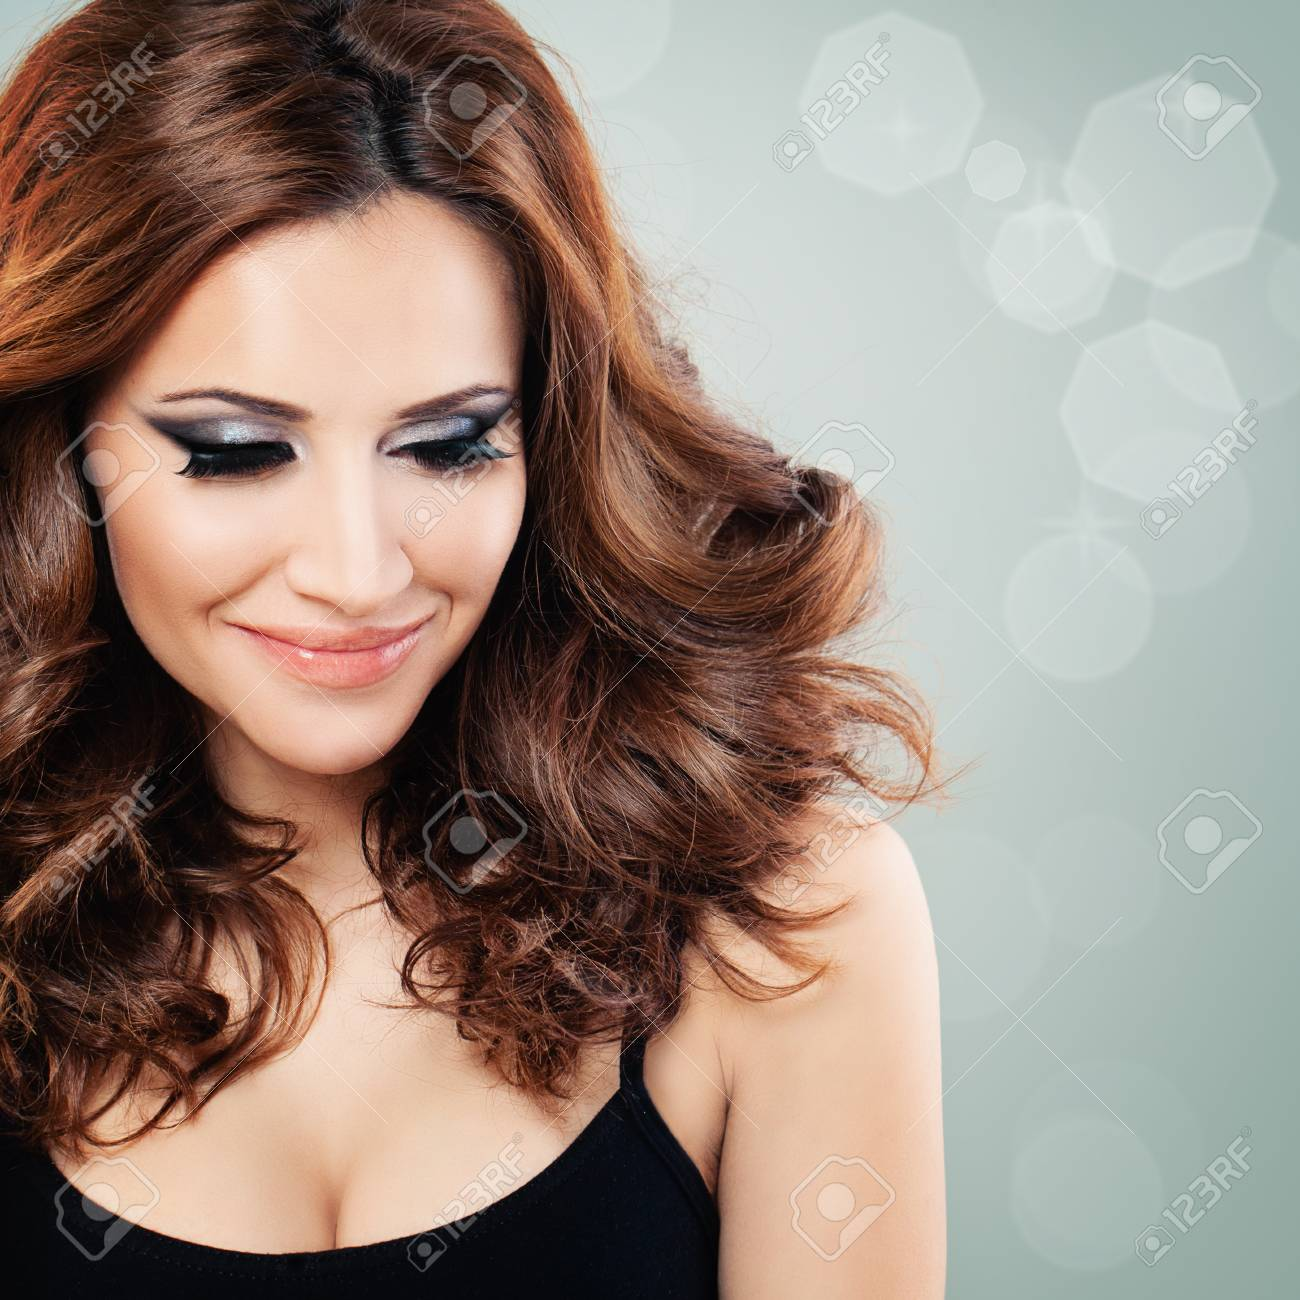 Beautiful Woman With Party Makeup And Red Curly Hair On Background